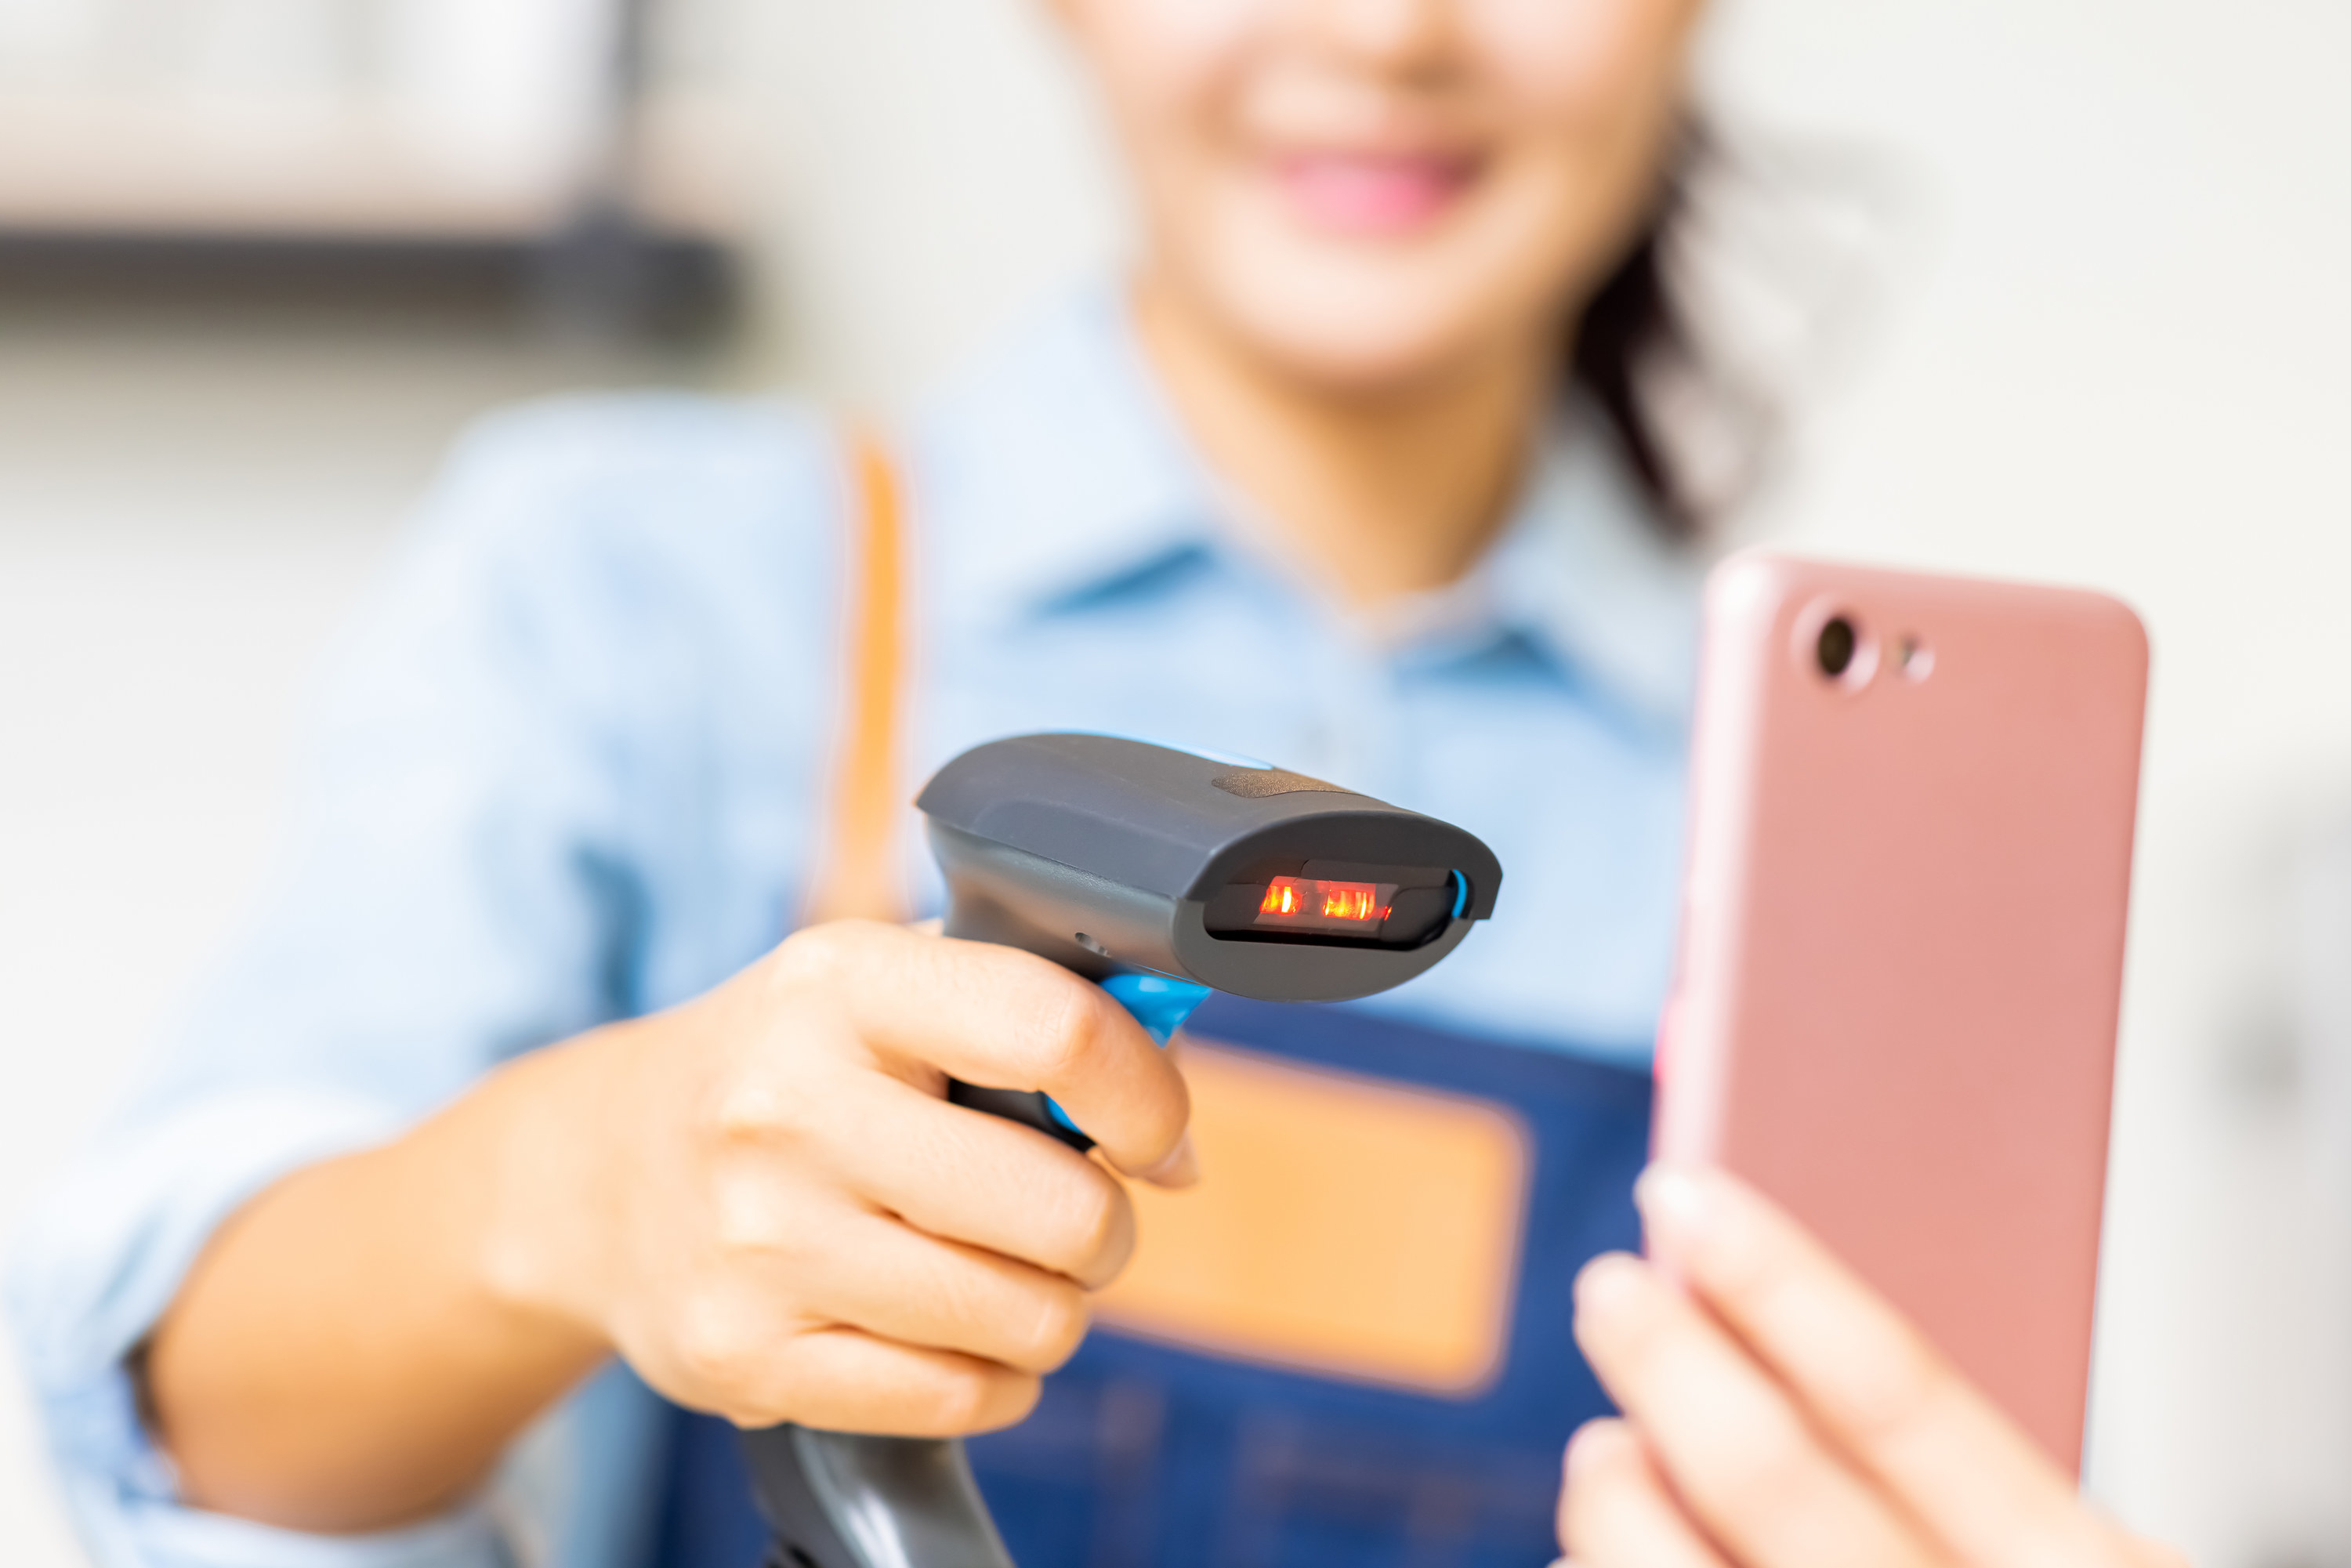 A cashier scanning a person's phone